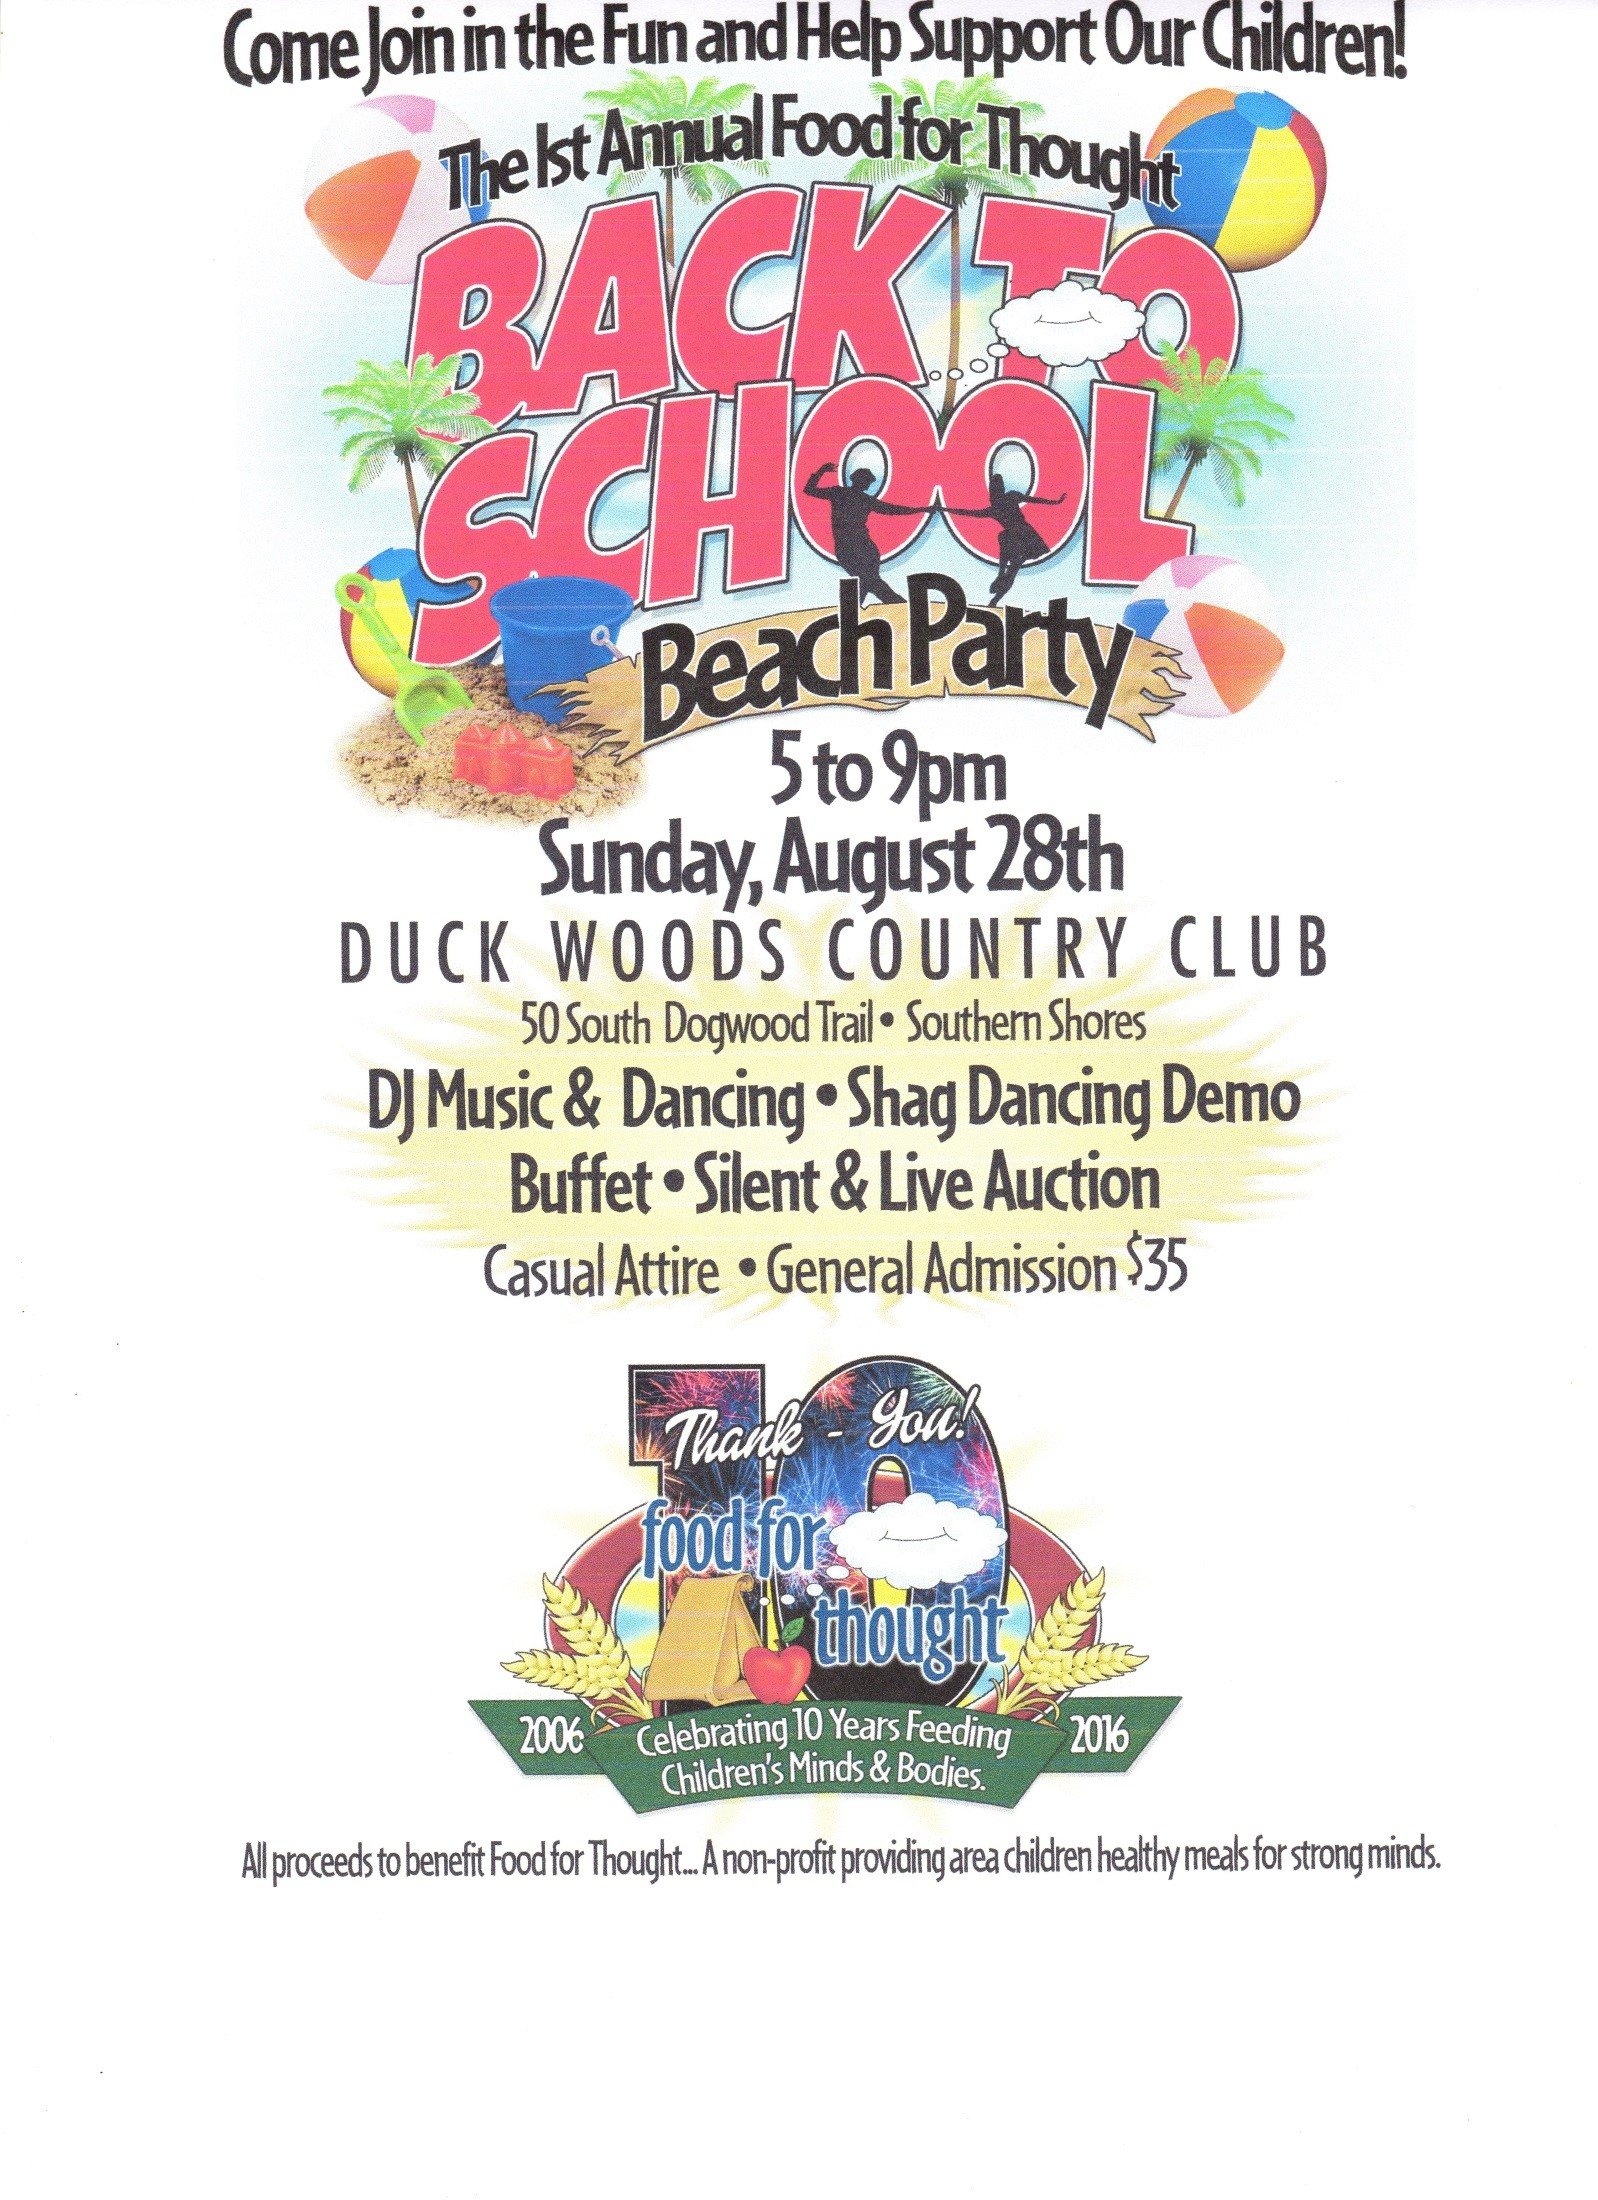 Food for Thought Back to School Beach Party Seeks Auction Items